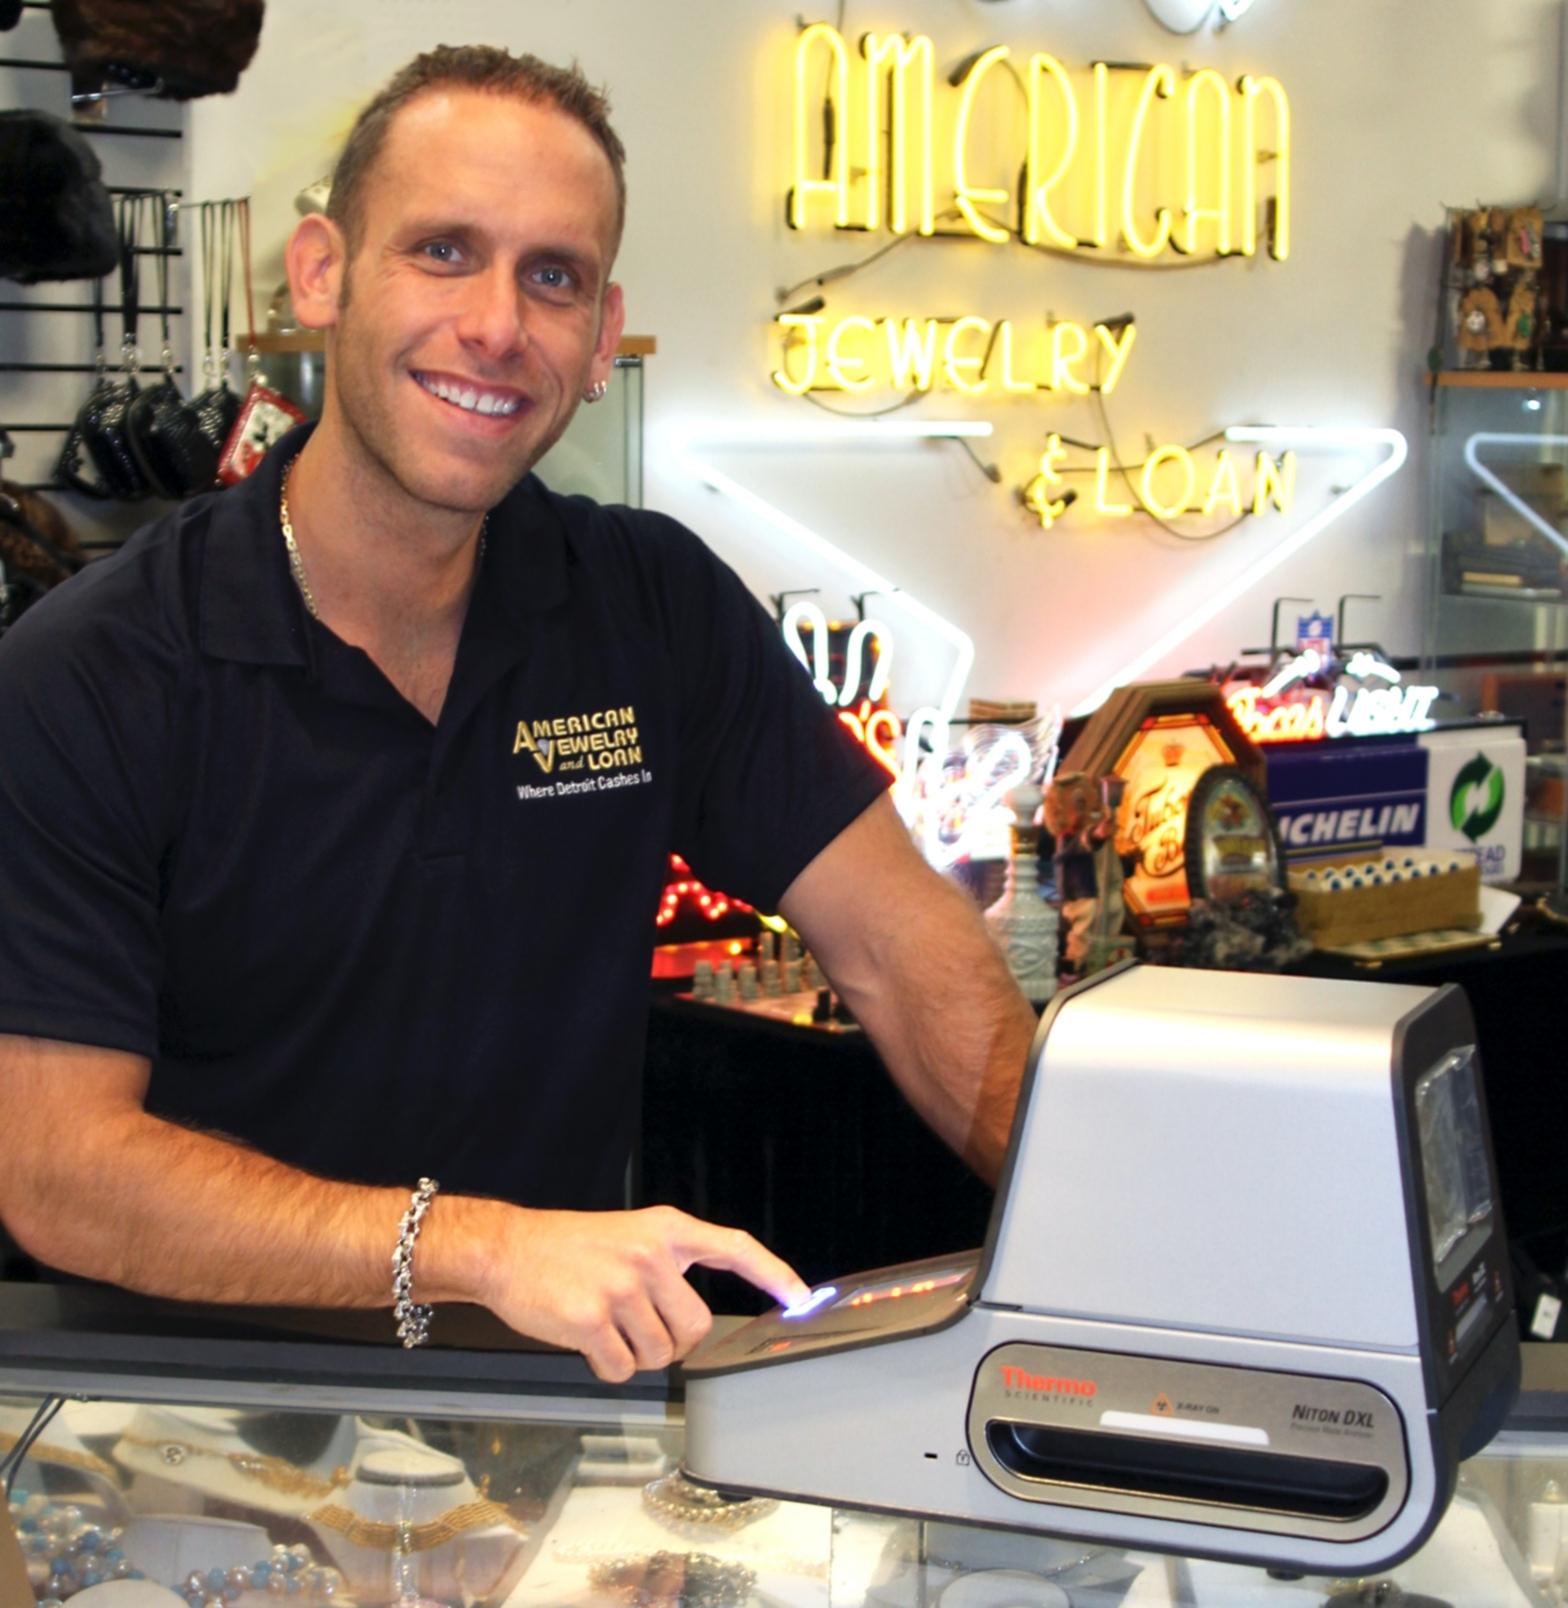 American jewelry and loan adopts thermo scientific xrf for Family jewelry and loan